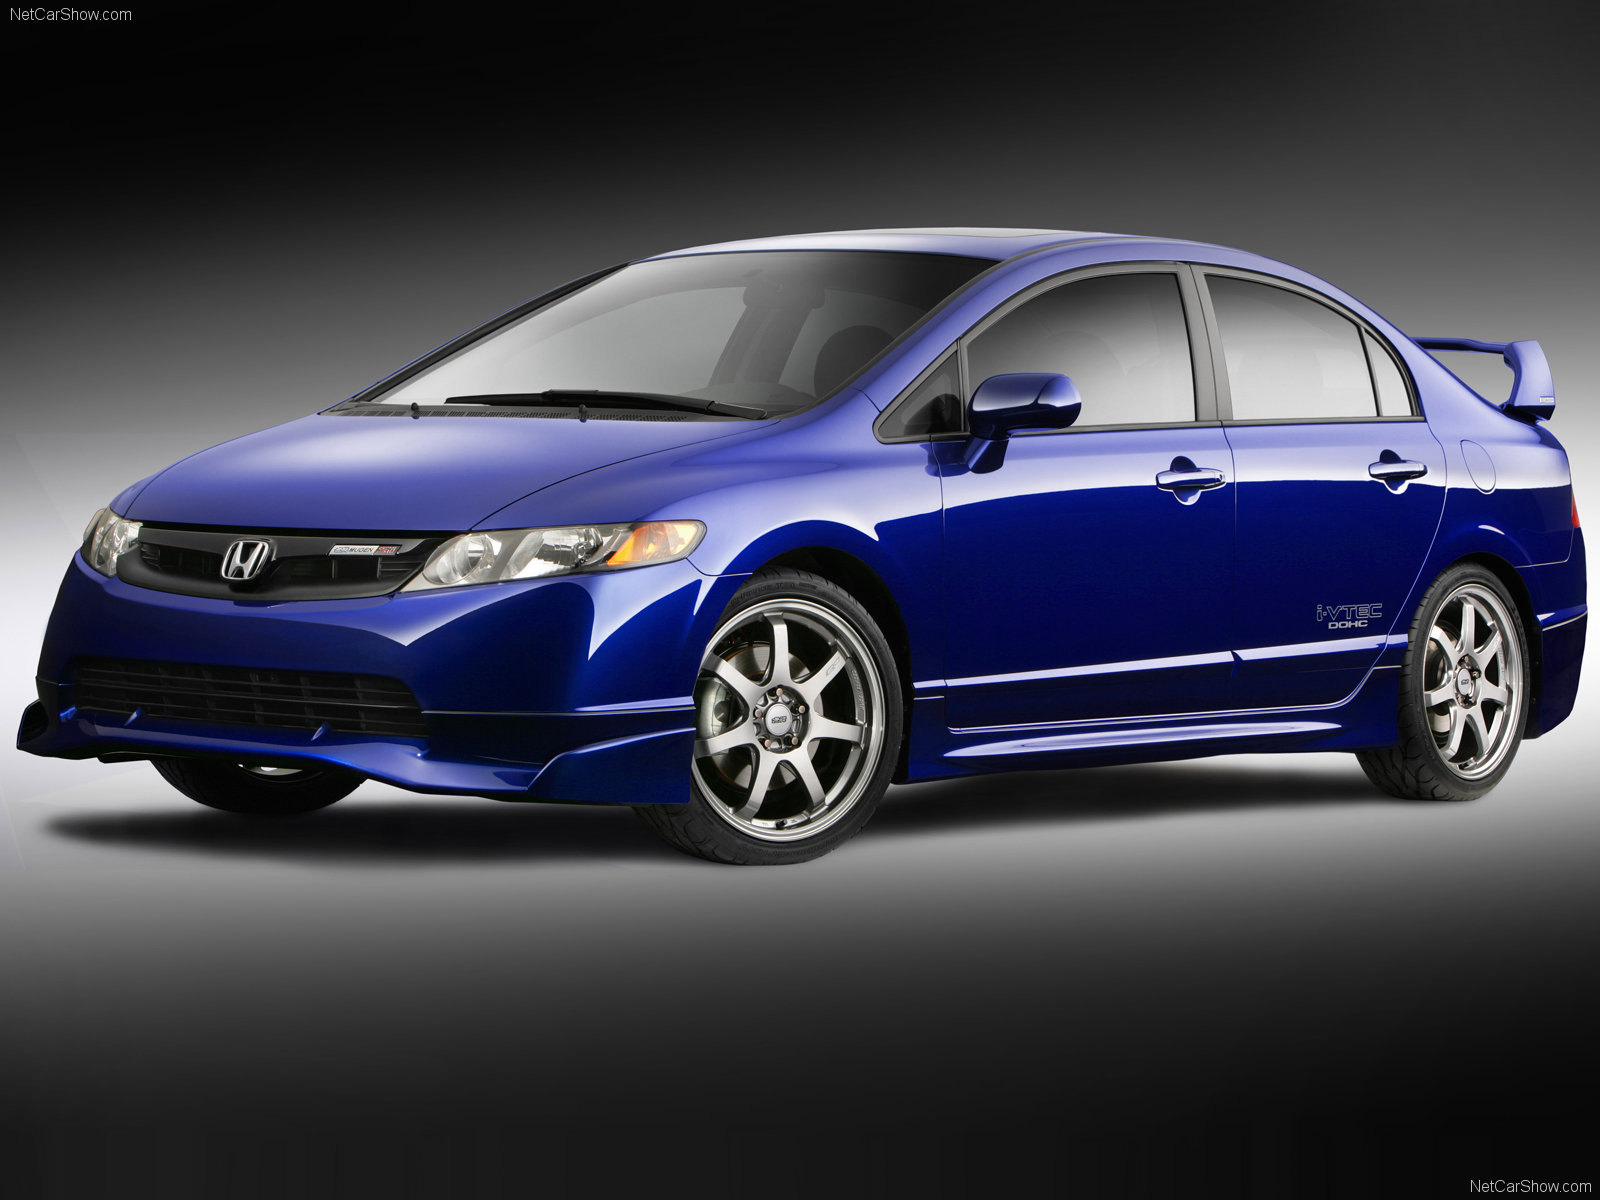 Honda Mugen Civic Si photo #46026